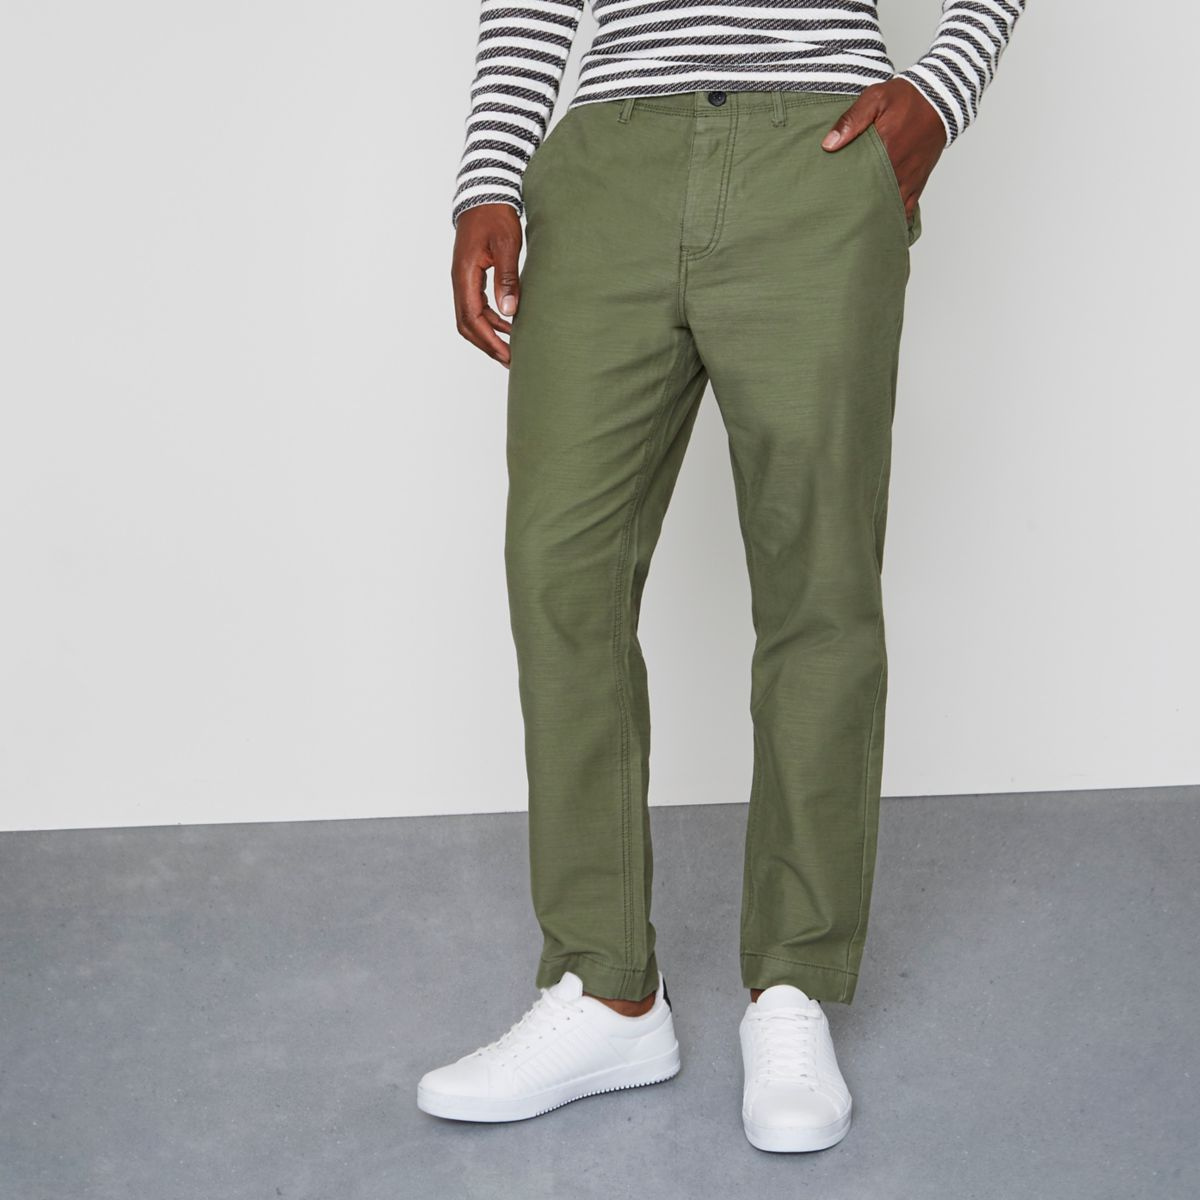 Khaki green tapered fit chino trousers